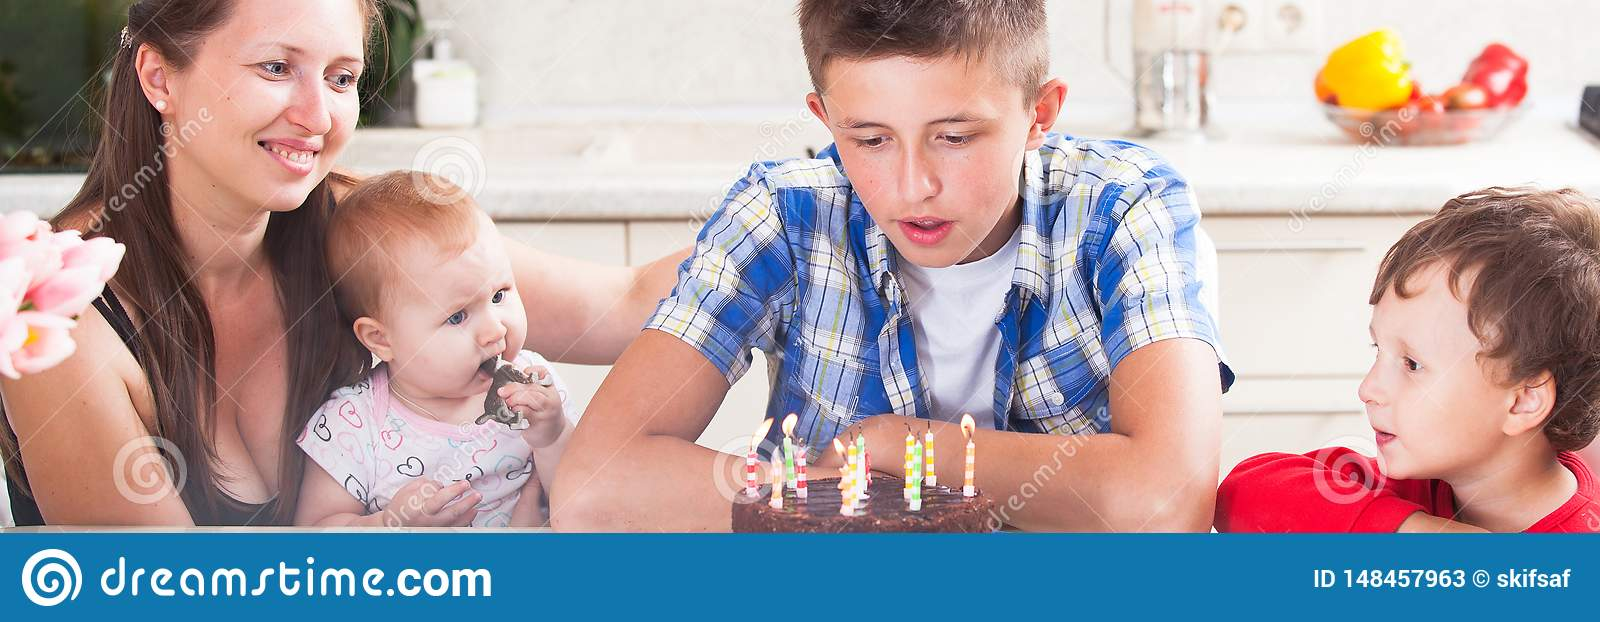 Teenager blows out the candles on a birthday cake